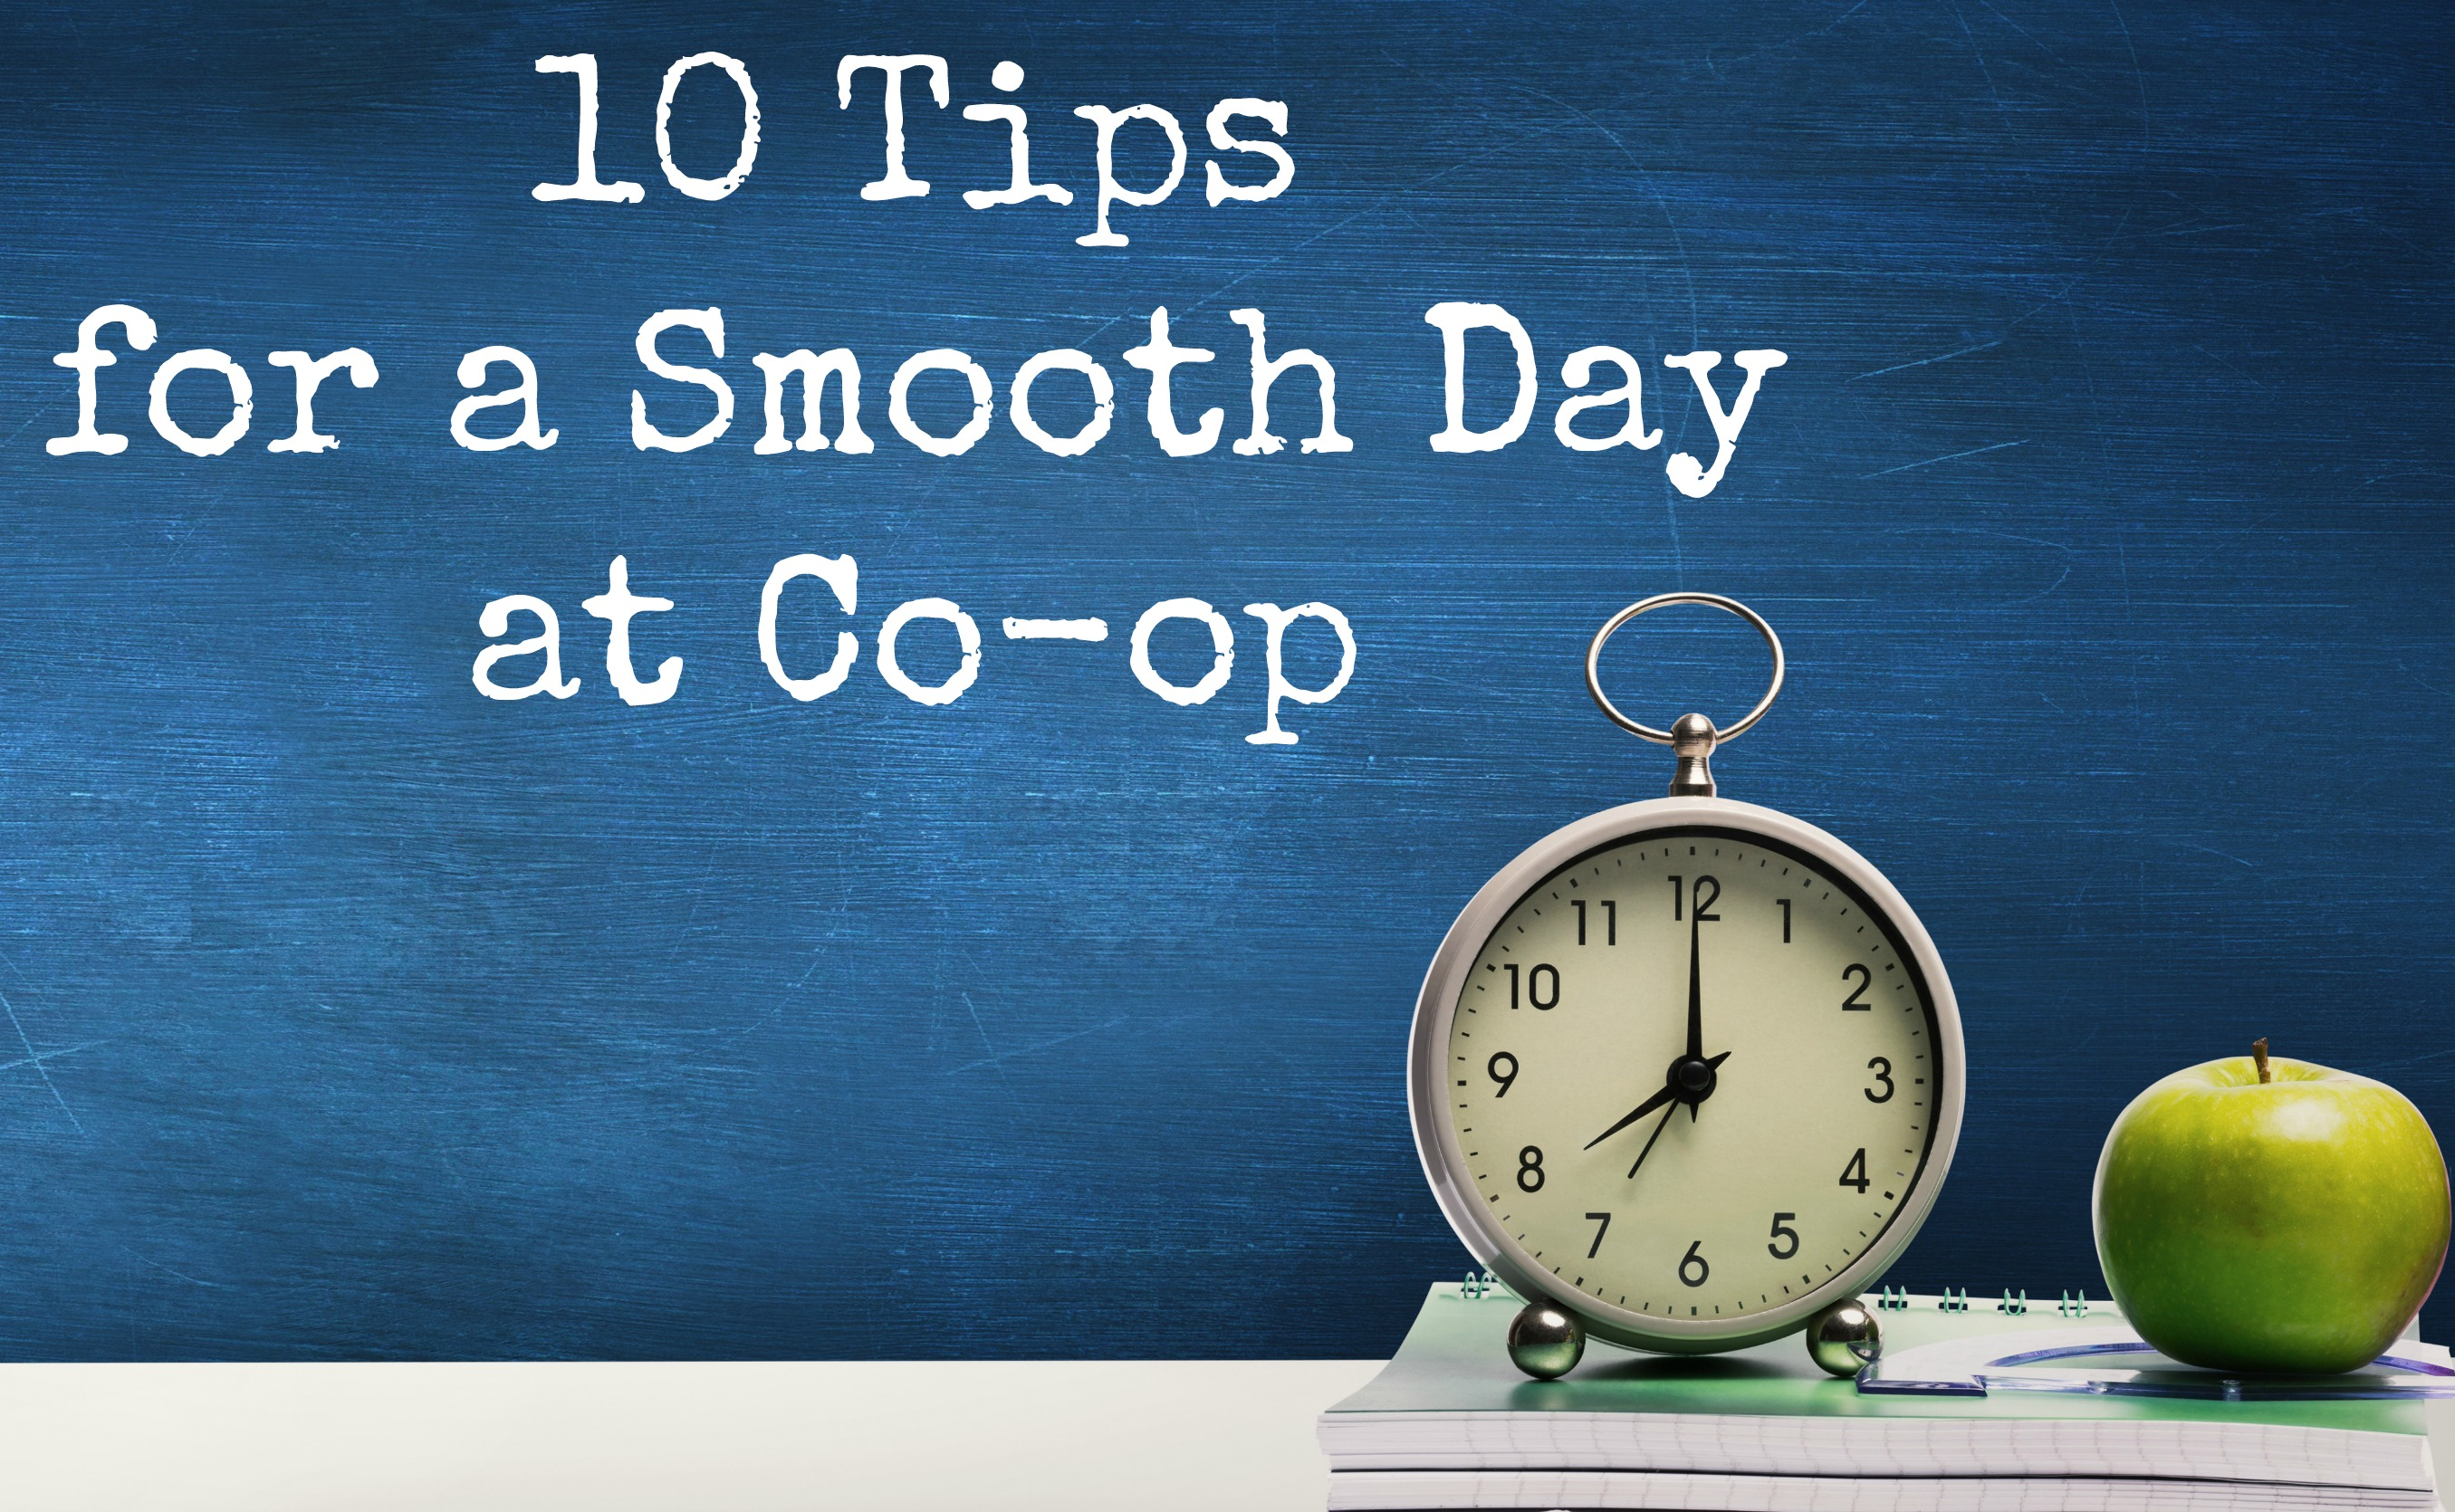 10 Tips for a Smooth Day at Co-op